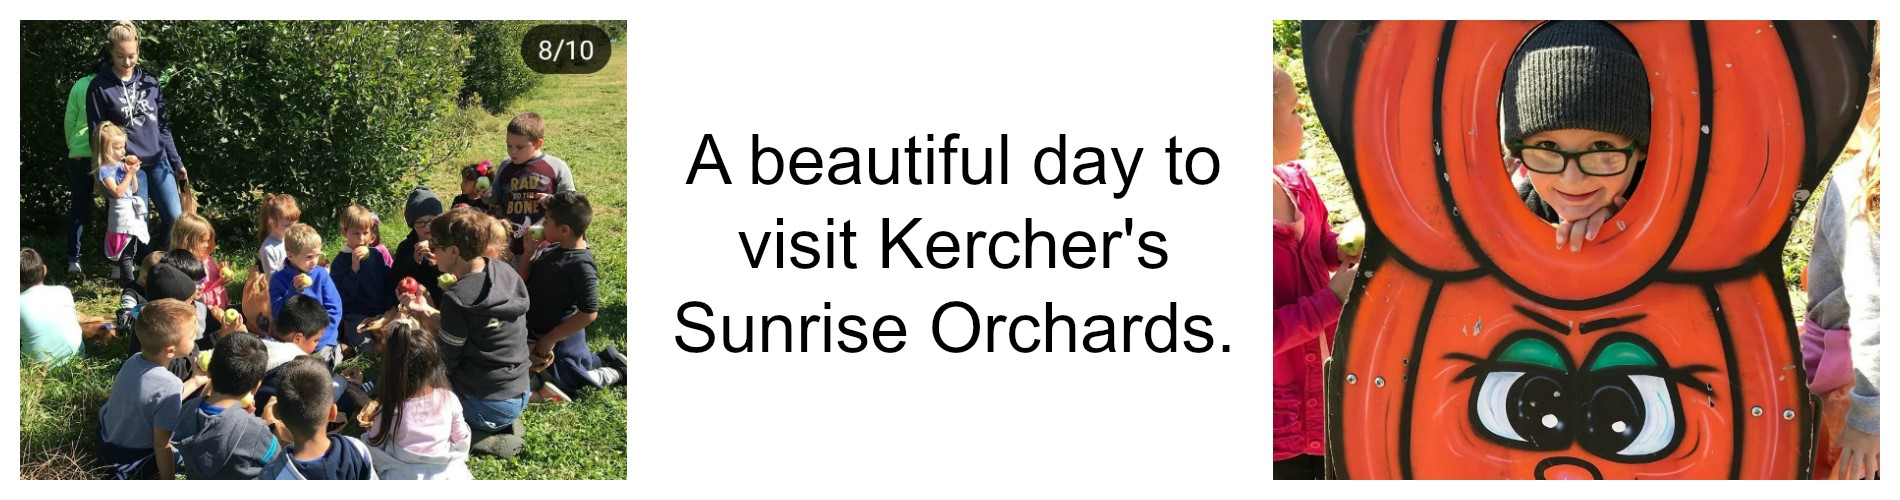 Field trip to Kercher's Sunrise Orchards.